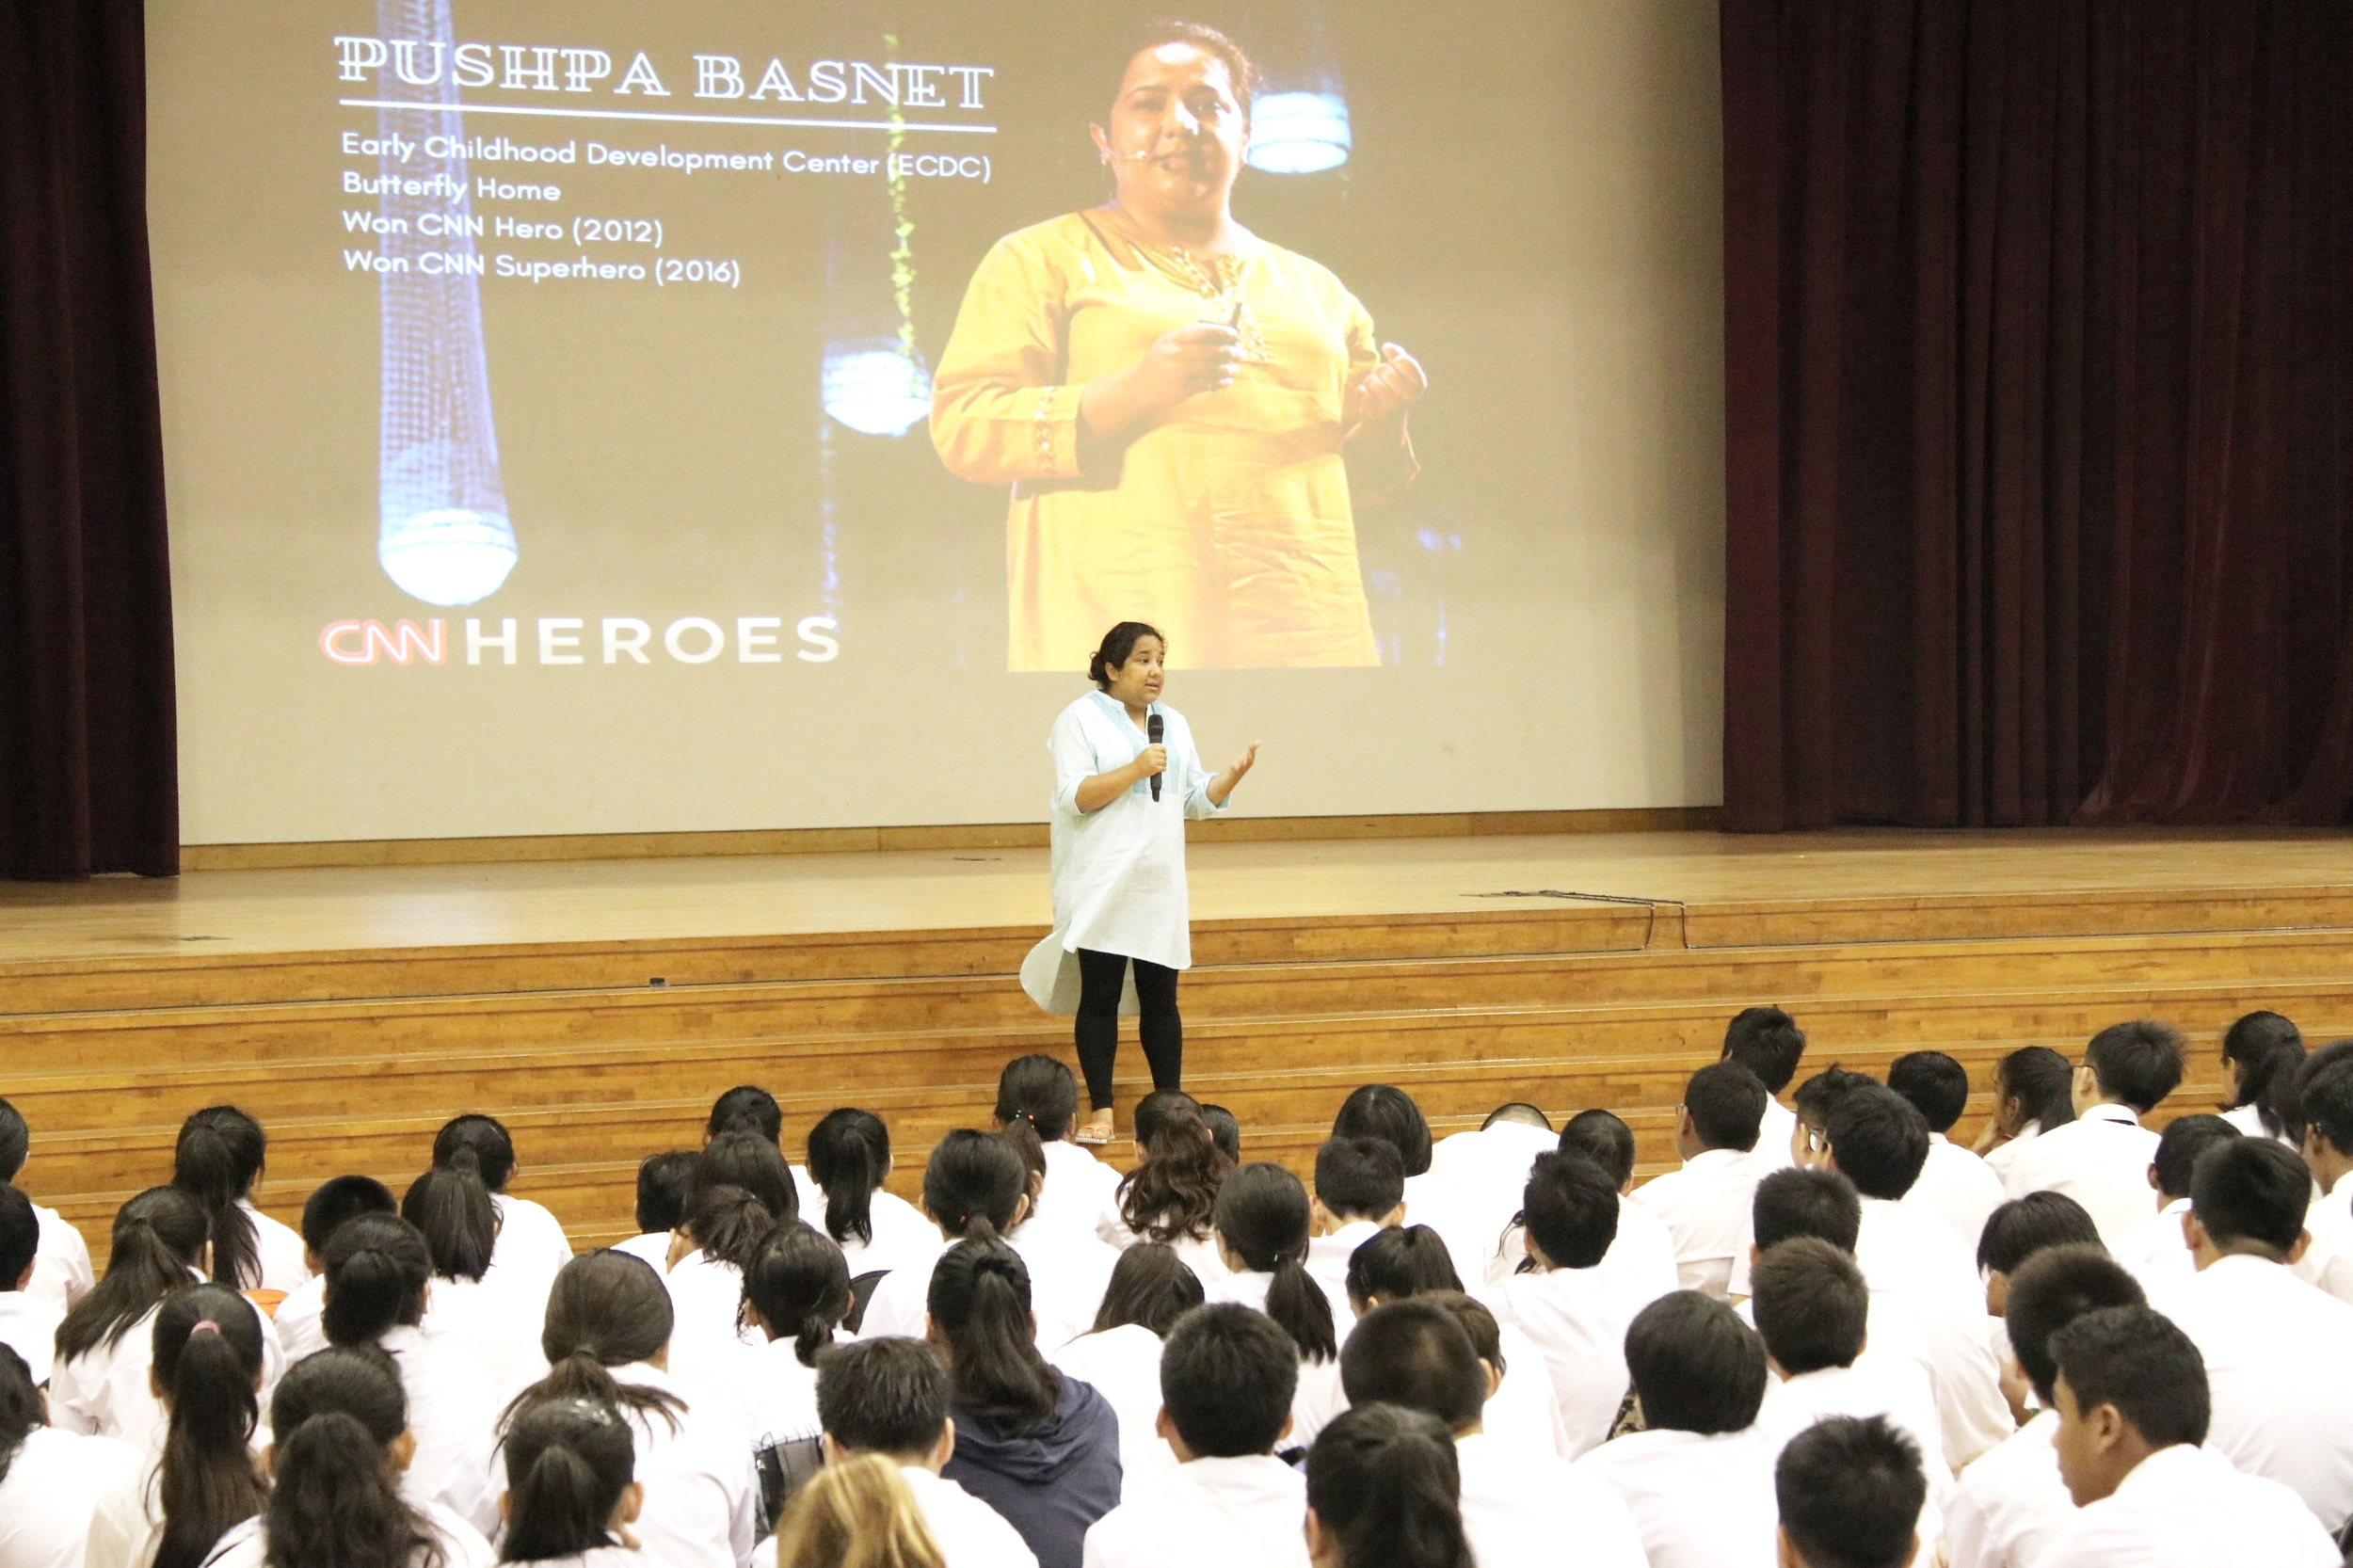 CNN Superhero, Pushpa Basnet sharing her story of hope and compassion to students of Outram Secondary School.